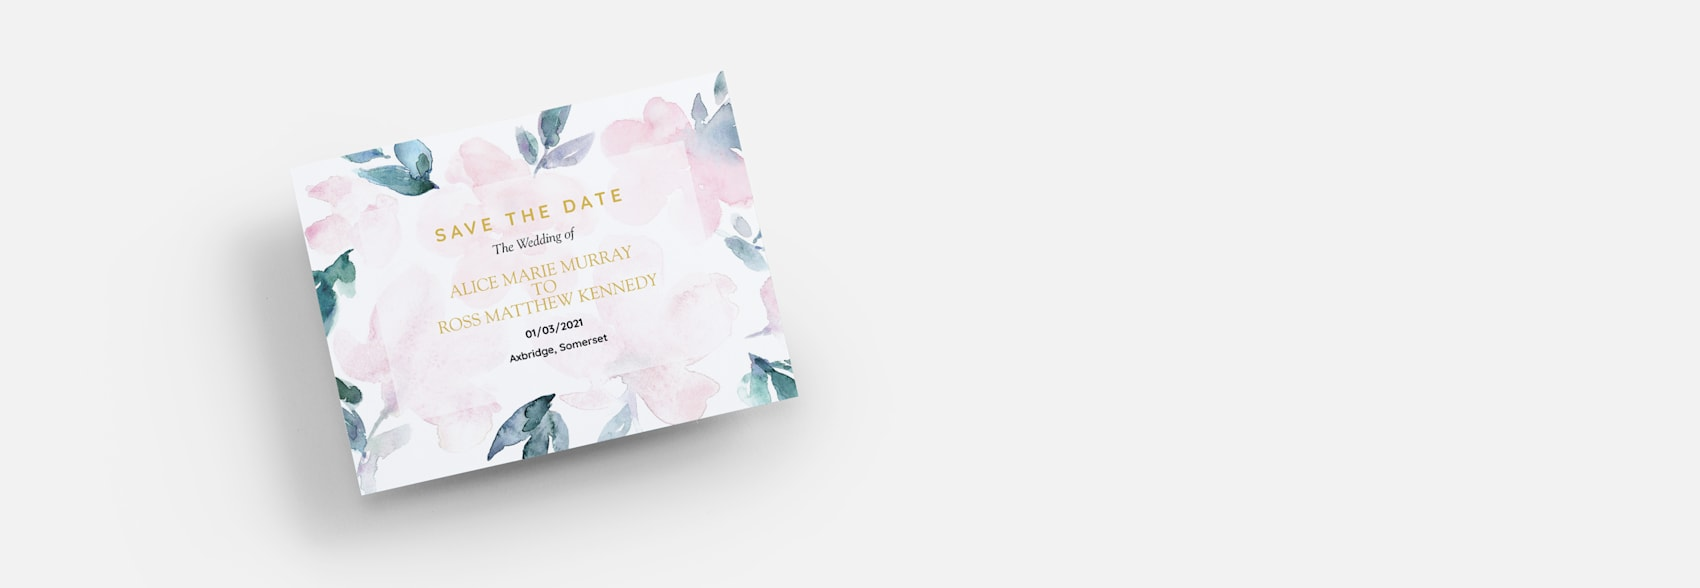 wedding save the dates with watercolour flower design